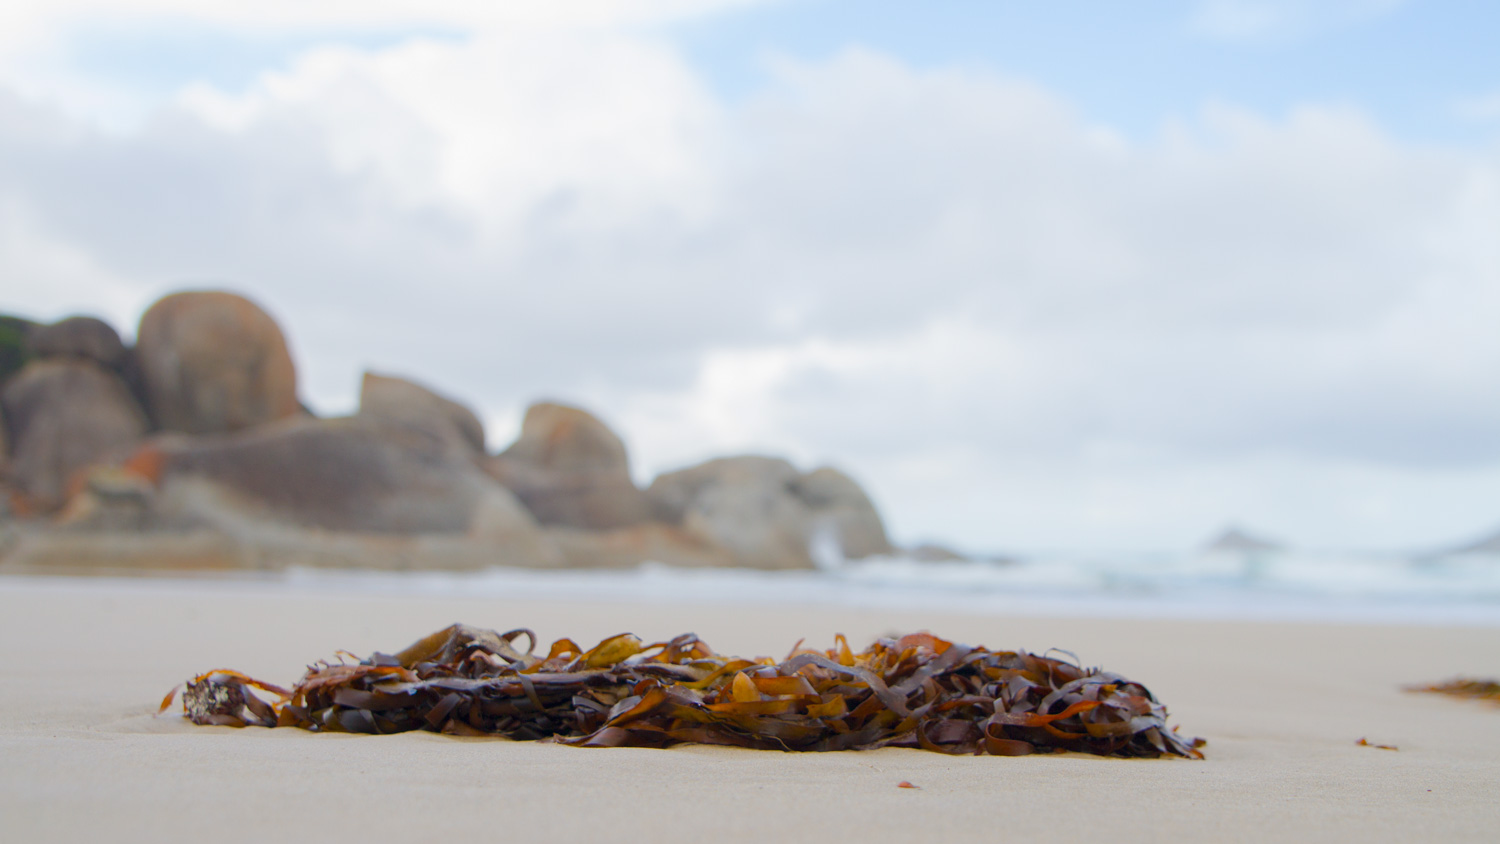 All this and I'm taking photos of seaweed...